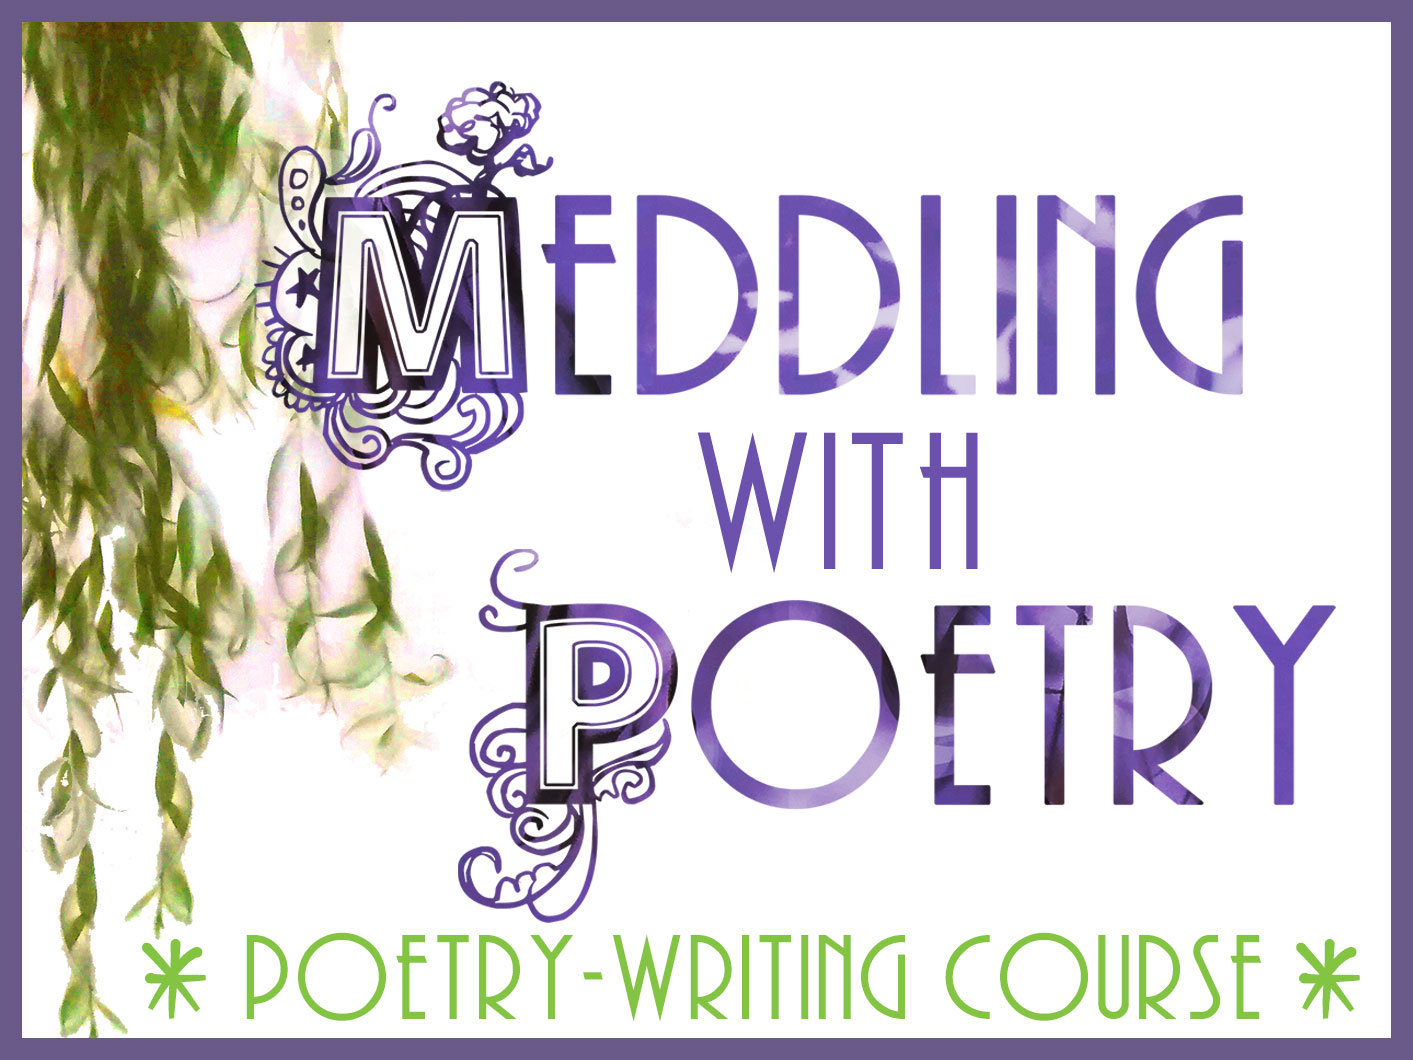 Meddling with Poetry